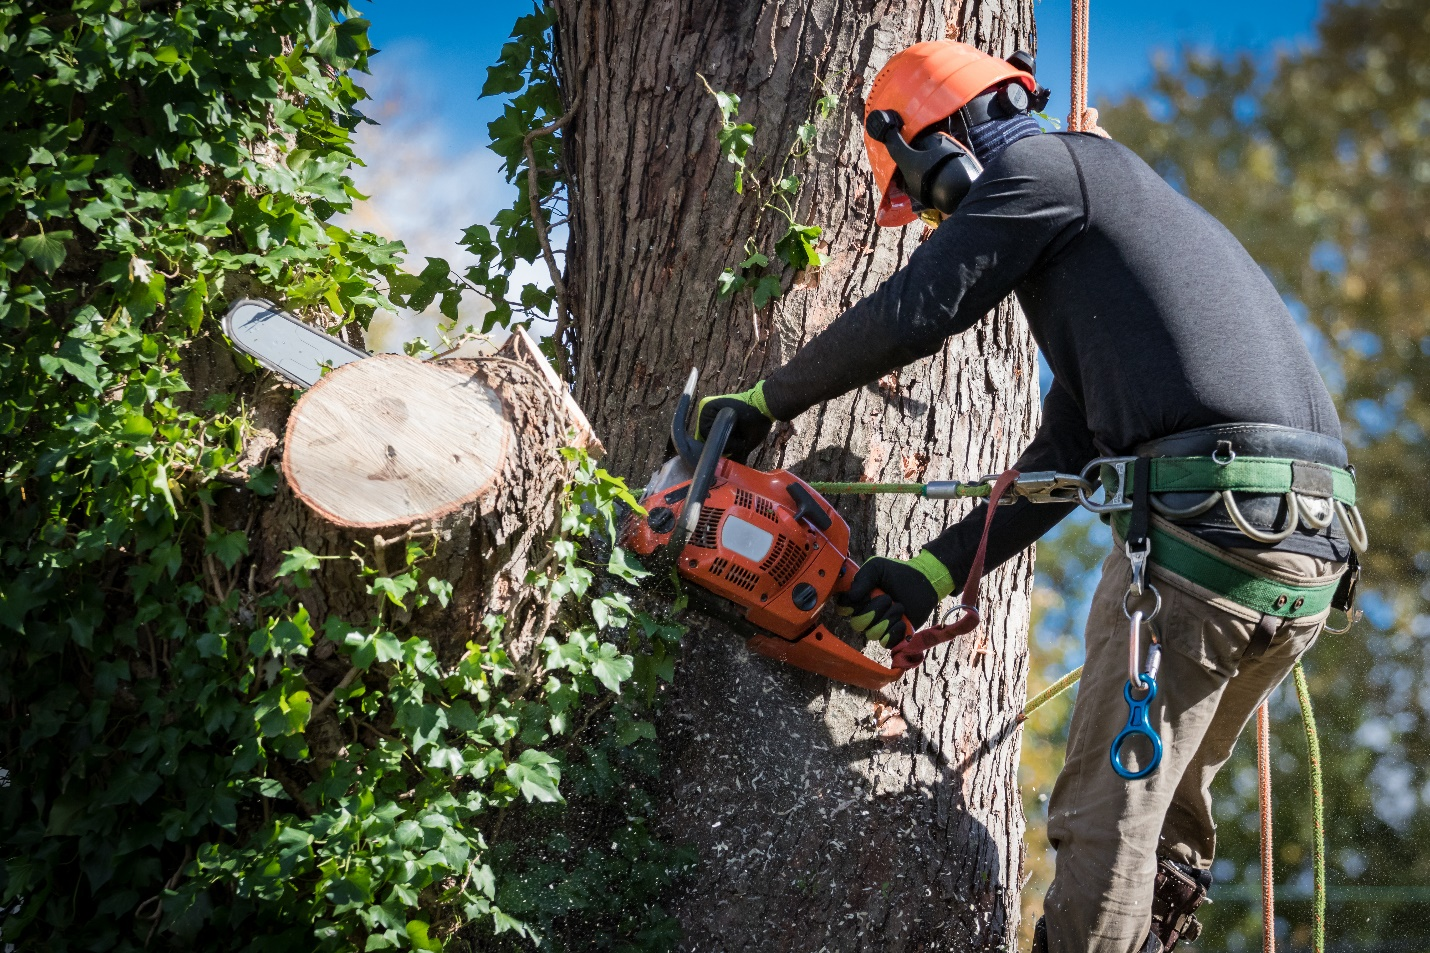 man in safety harnesses and helmet cuts down large tree sections